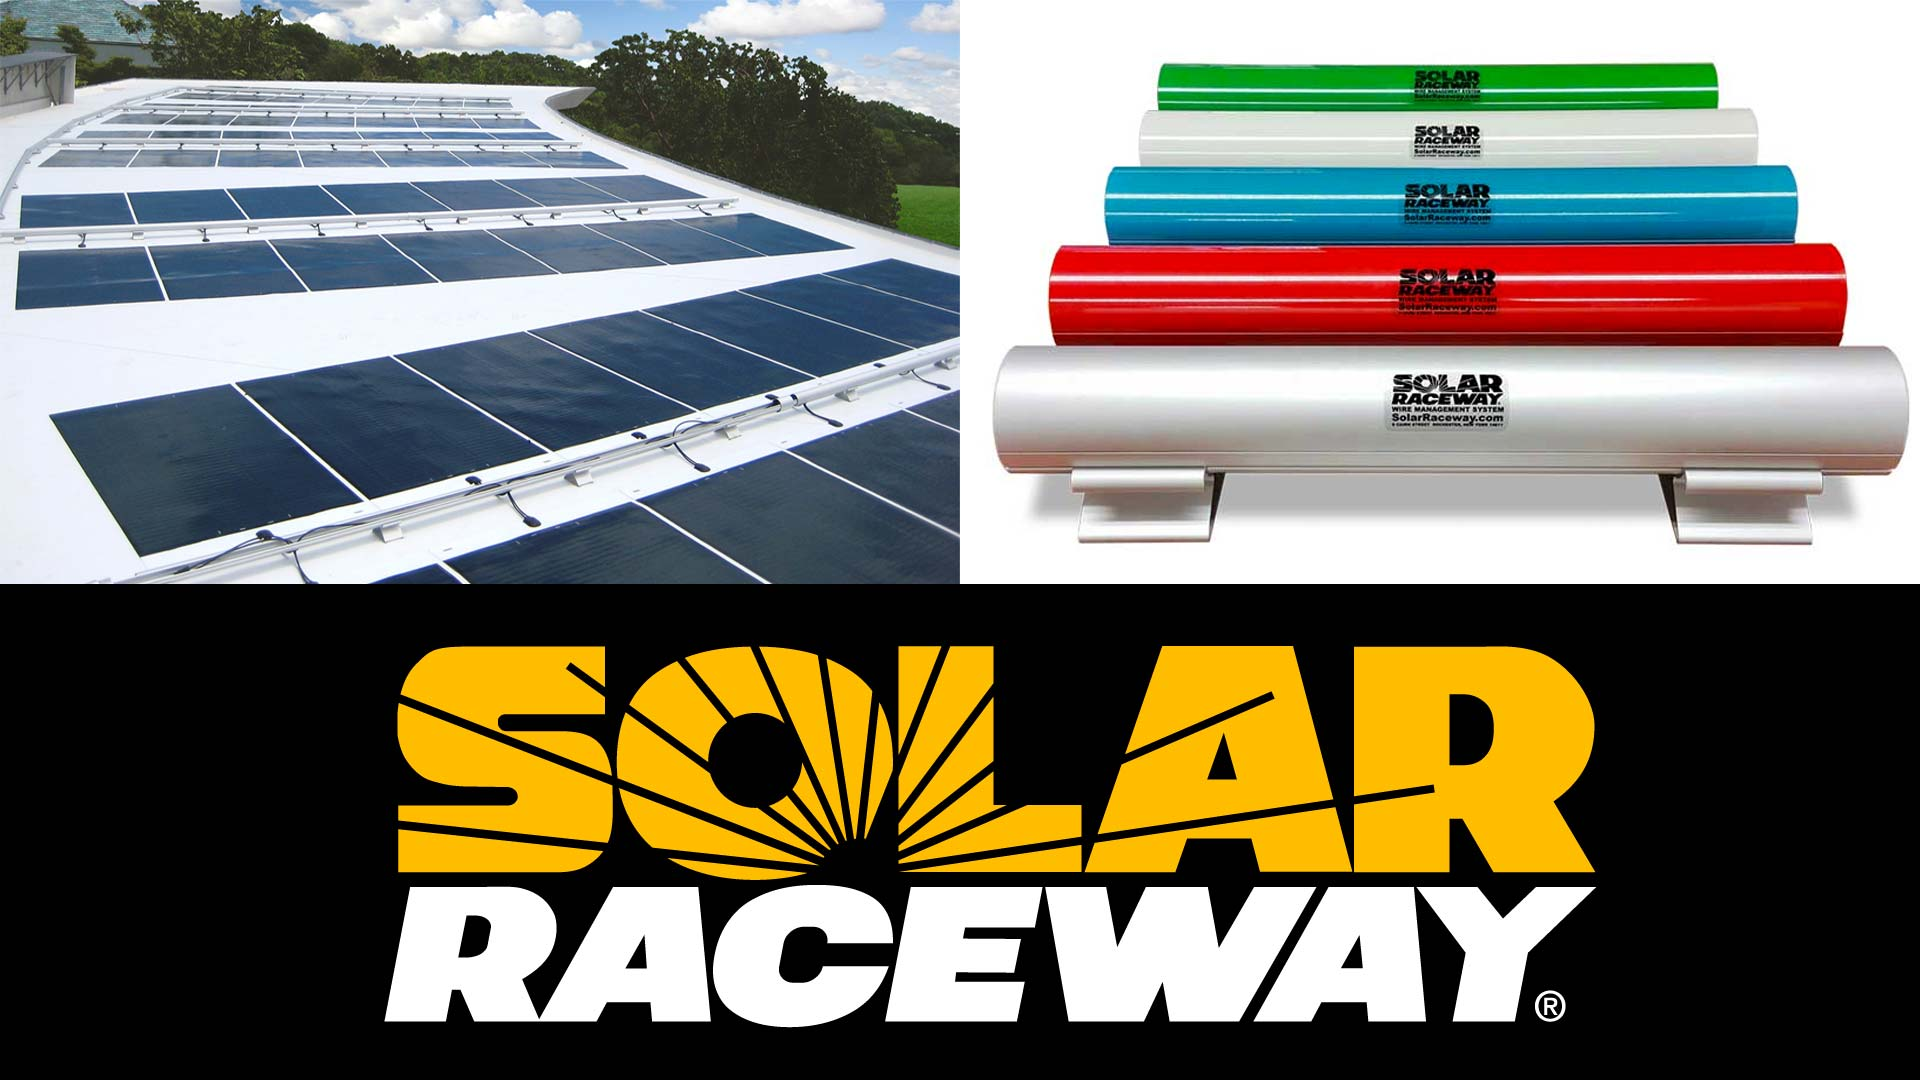 Solar Raceway Wire Management System The Best Cable Tray For Your Panel String Wiring Installation